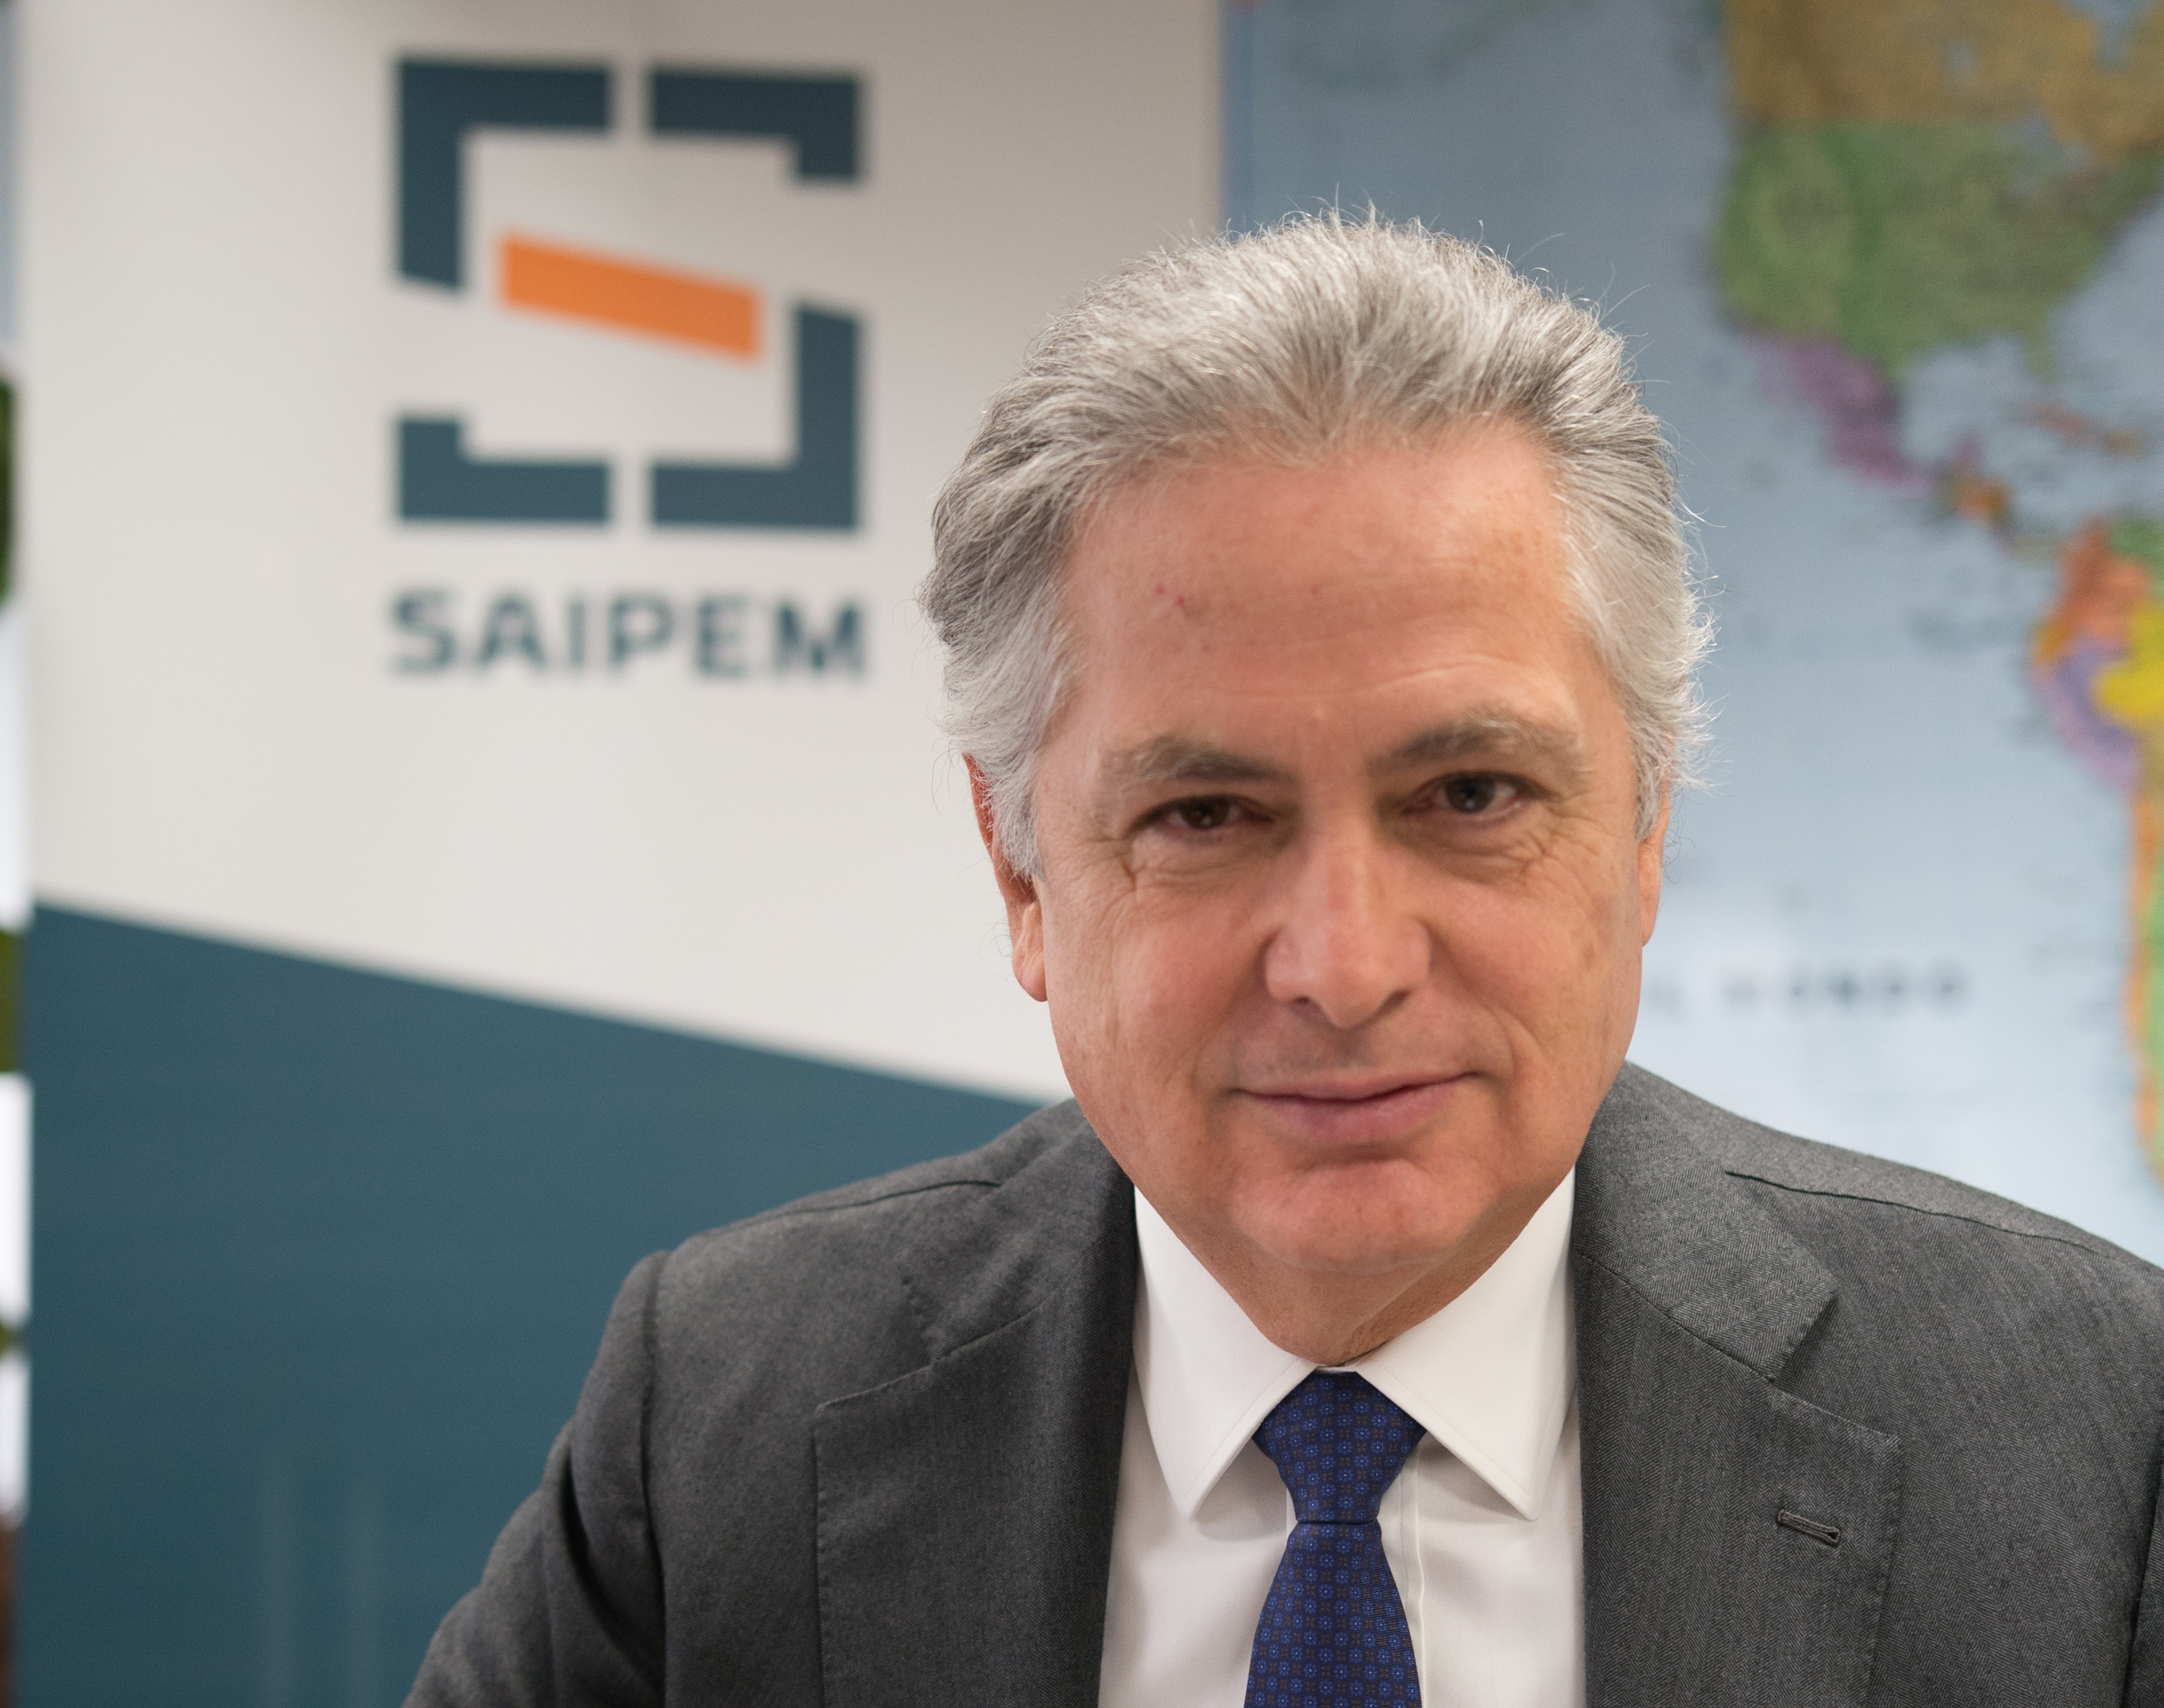 Saipem chief executive, Stefano Cao.